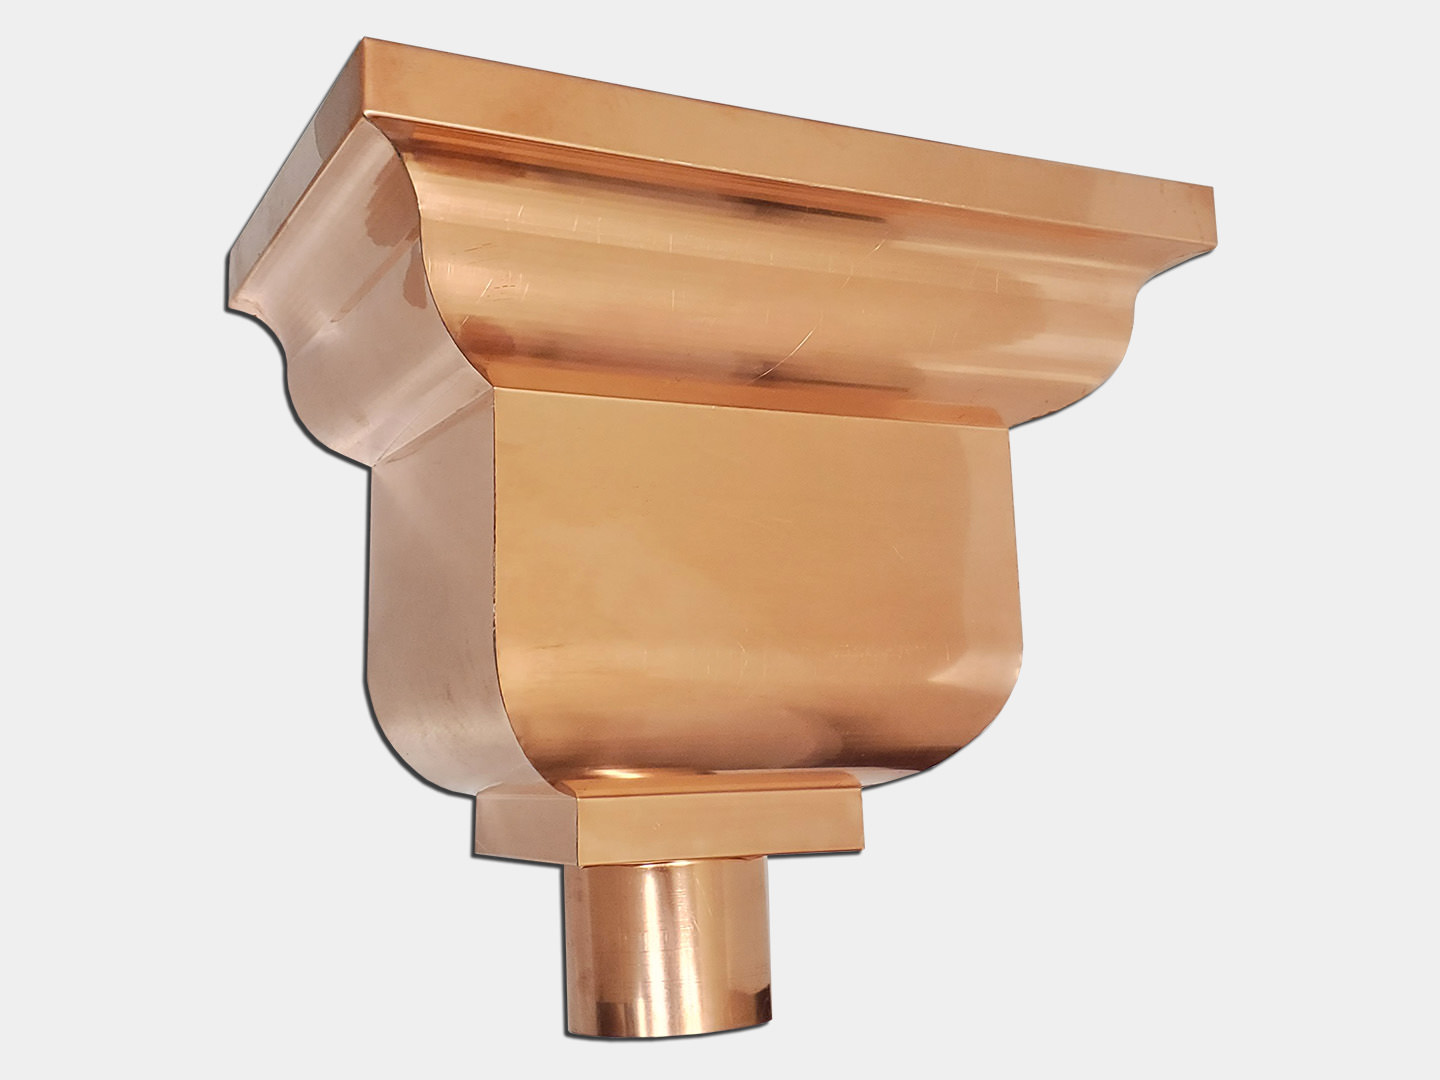 The economy residential conductor head - copper